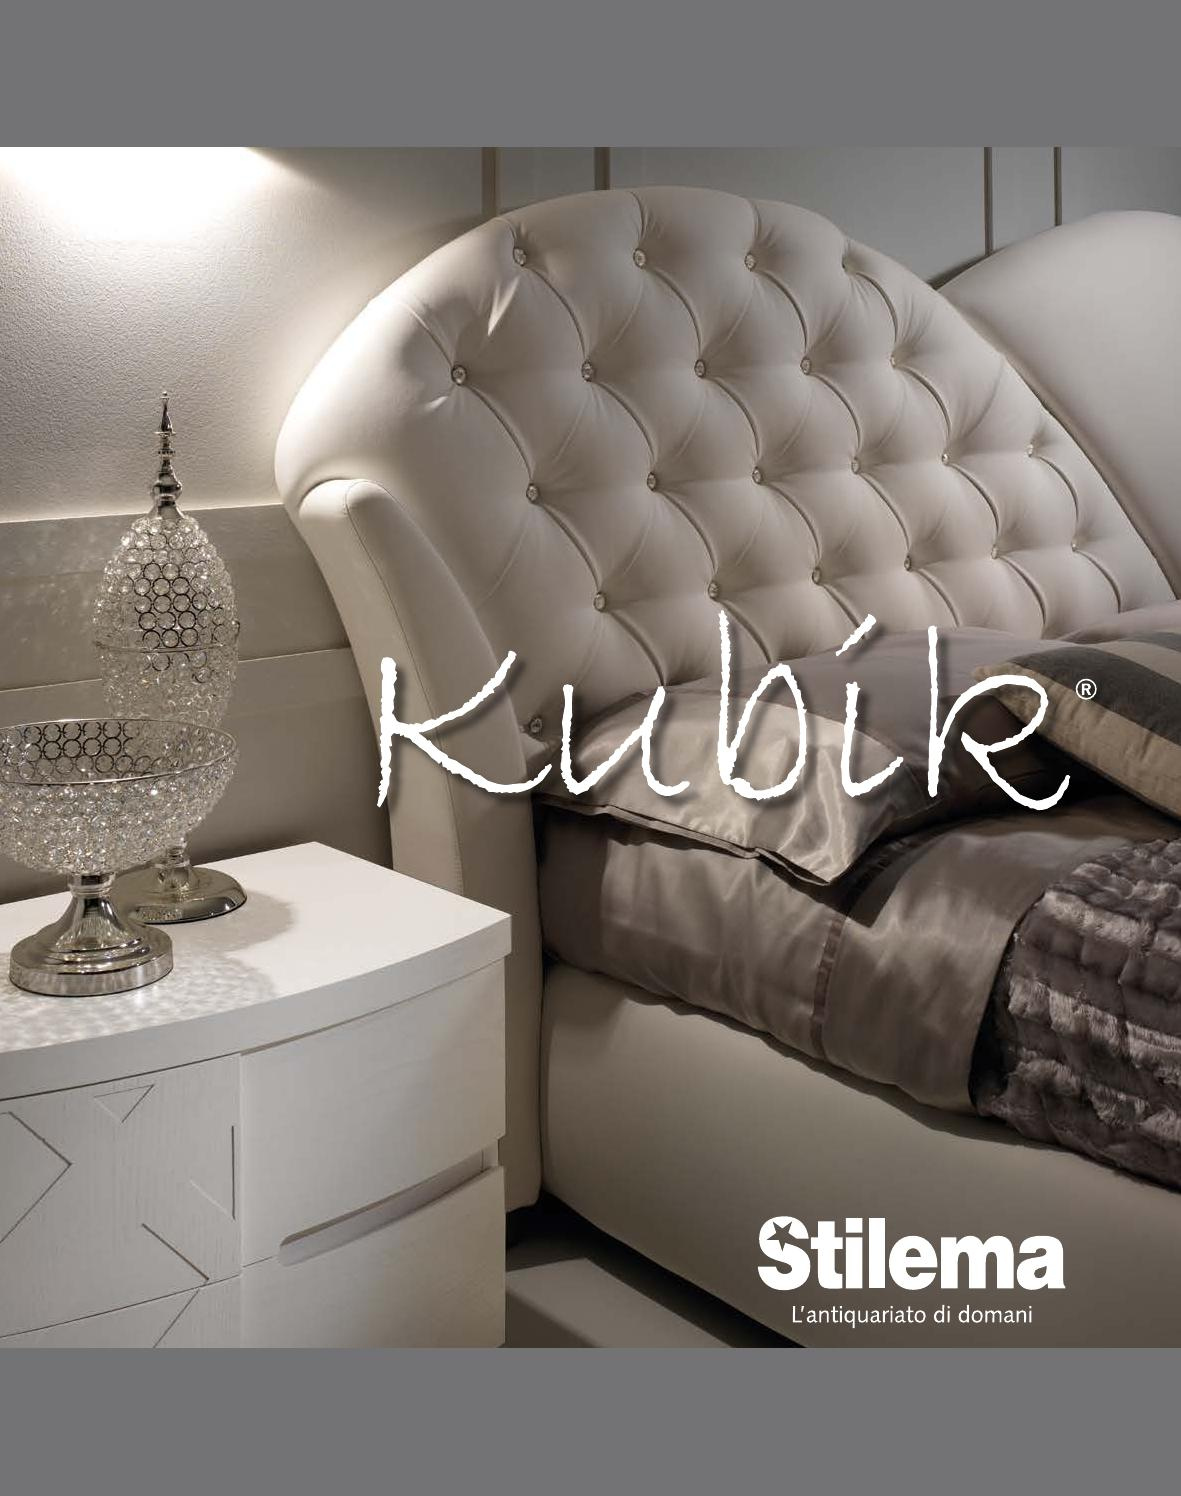 Stilema kubik by stilema mobili issuu - Consolle camera da letto ...